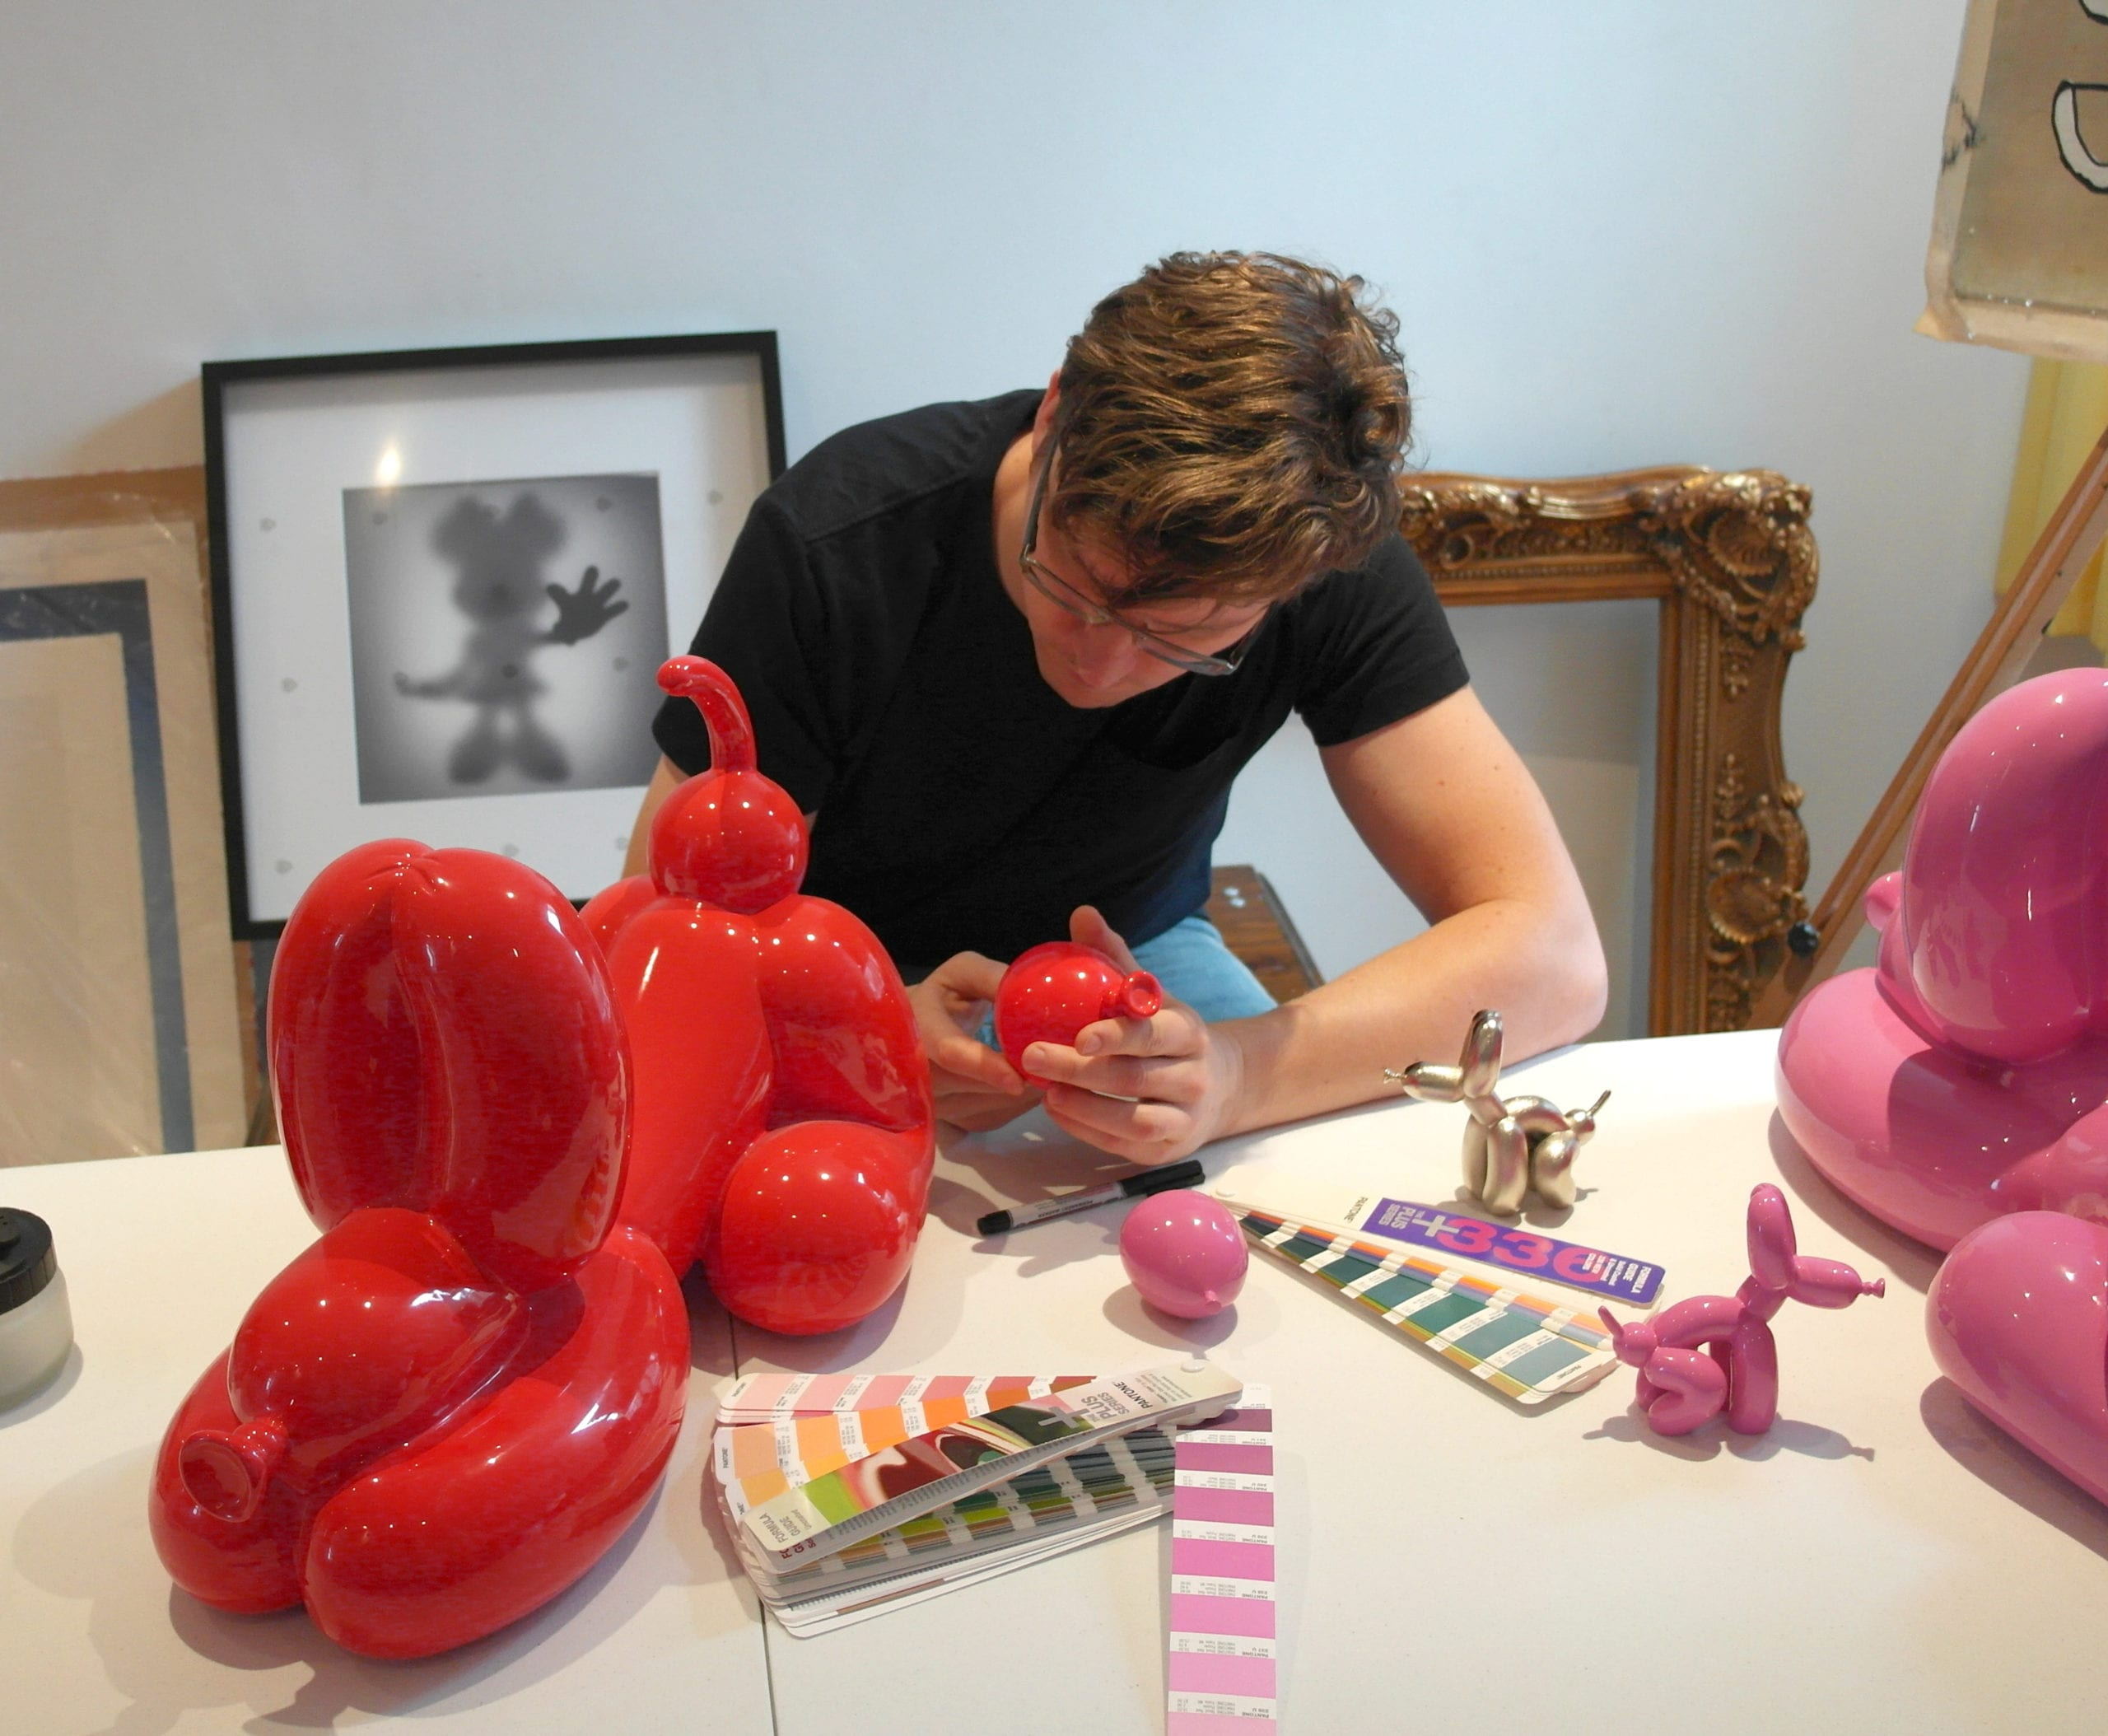 Happy POPek statue Red and Pink 50 cm, Sebastian Burdon in his studio